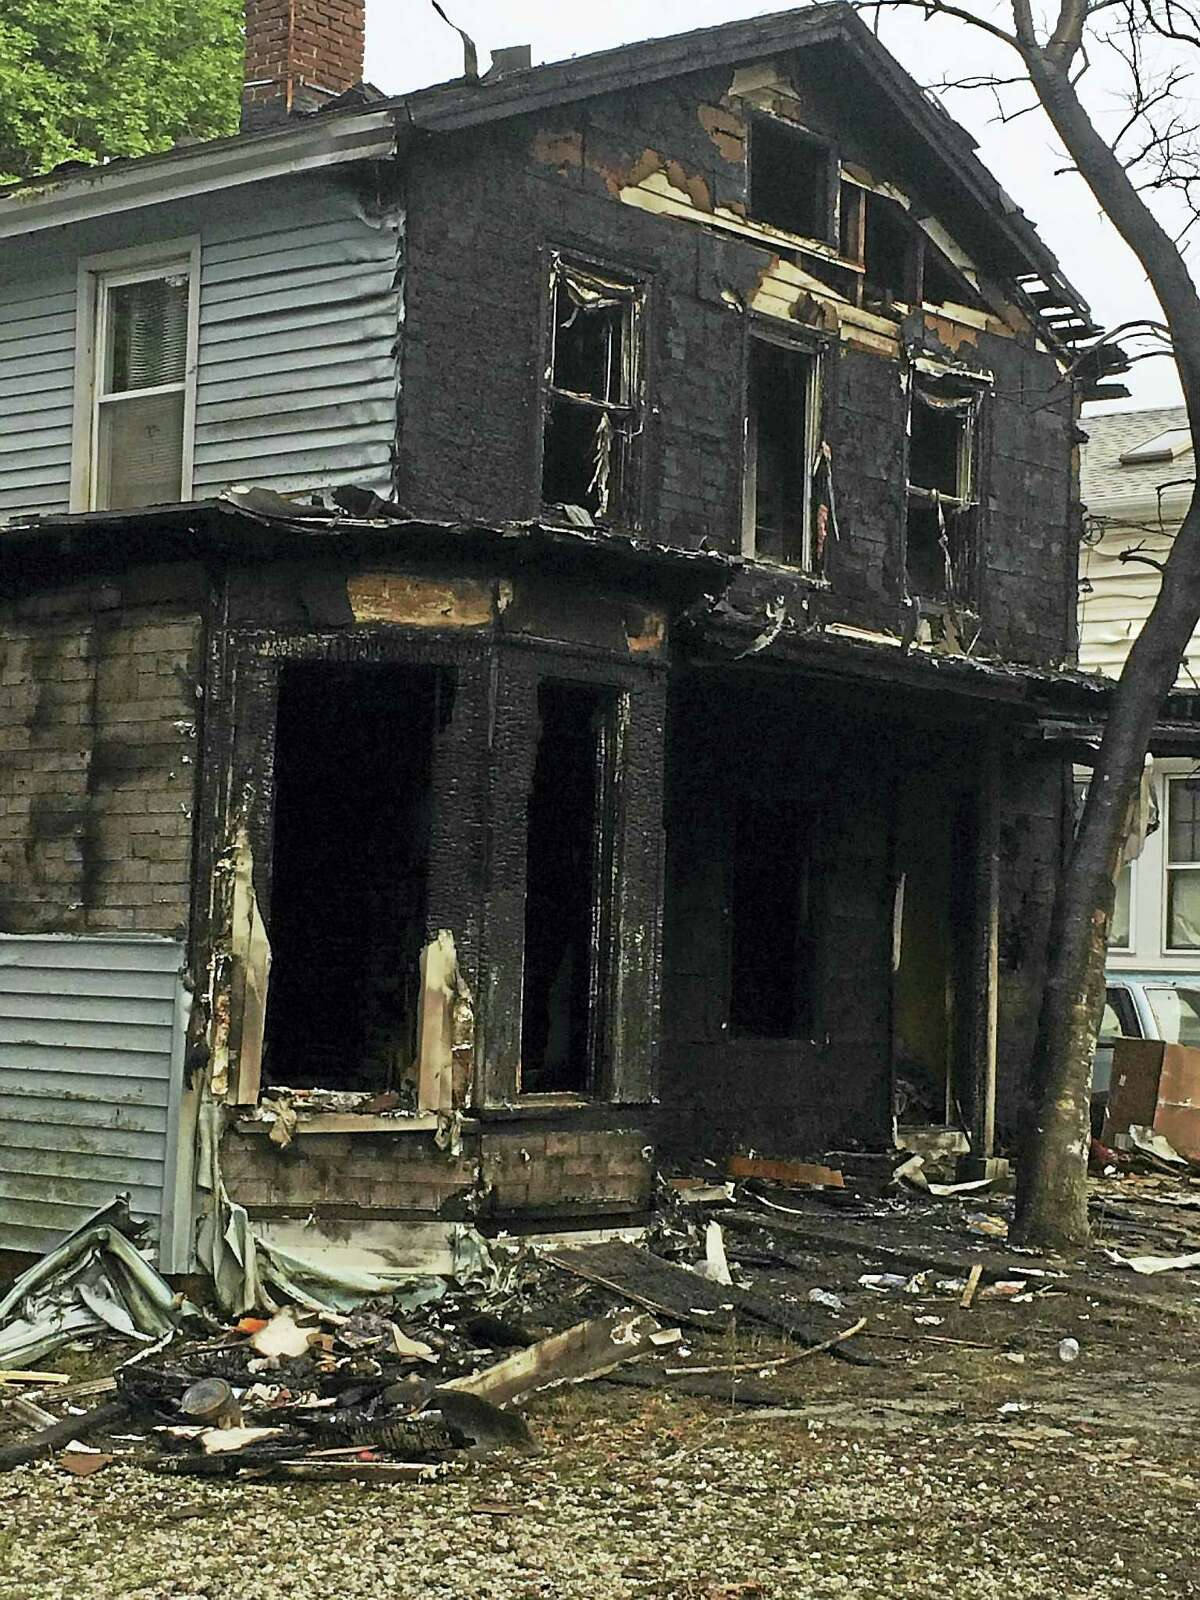 Fire destroyed a home at 16 Franklin St. in Ansonia Friday.